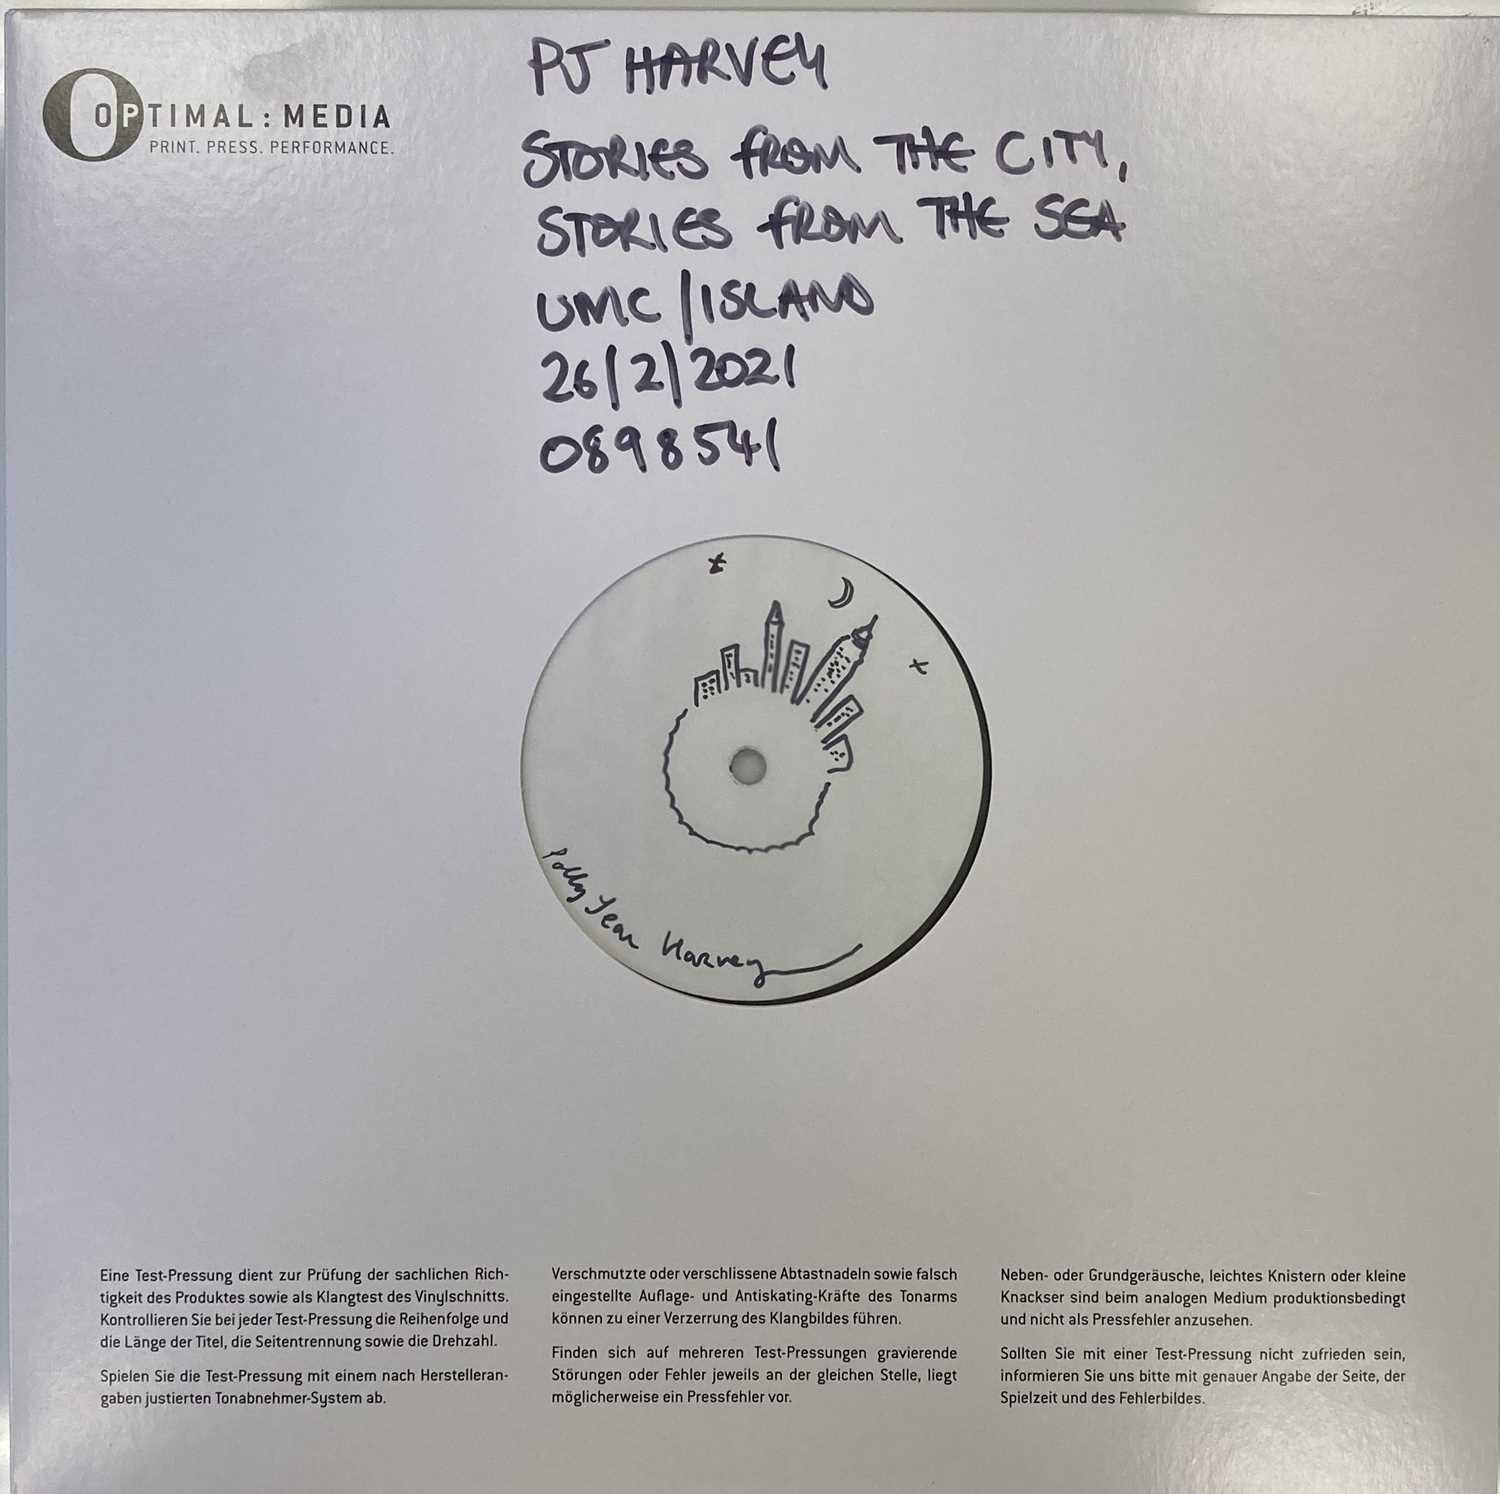 PJ HARVEY - STORIES FROM THE CITY, STORIES FROM THE SEA LP (SIGNED & ILLUSTRATED WHITE LABEL TEST PR